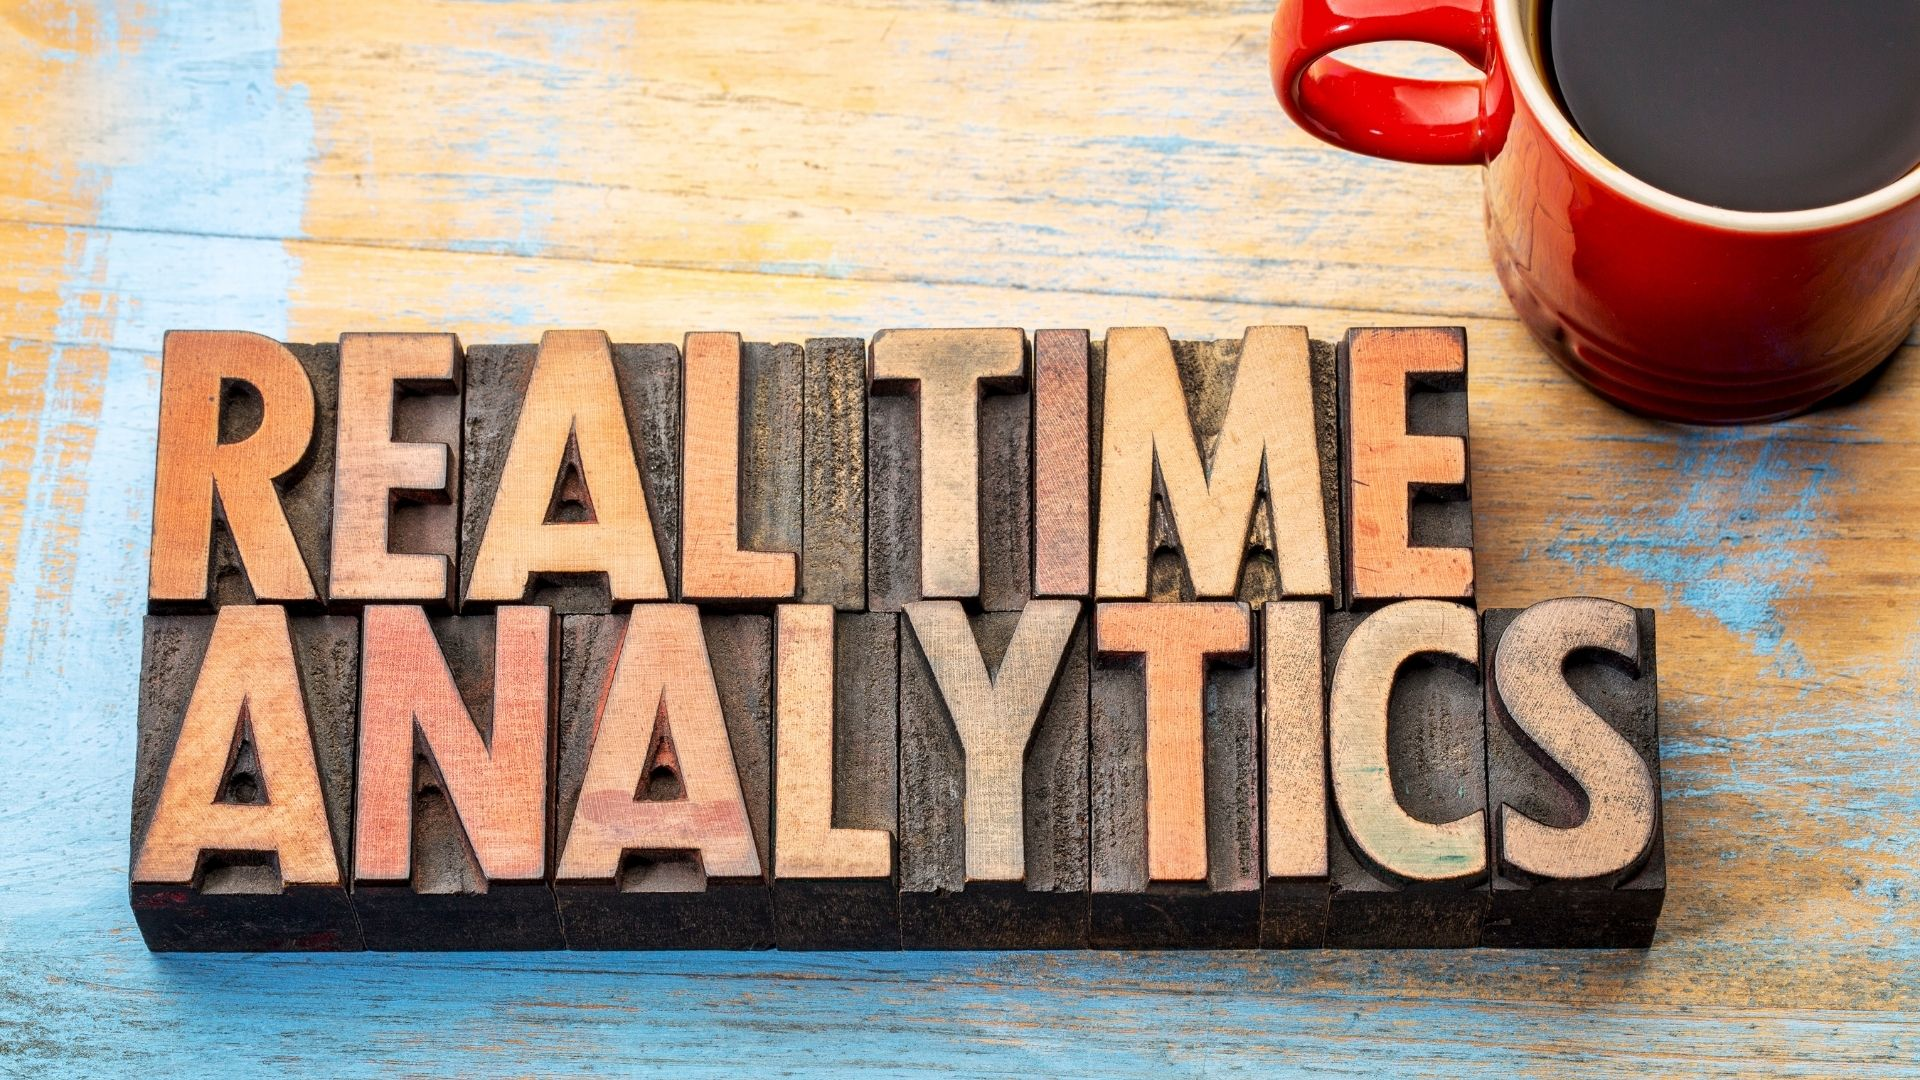 Upgrading the finance department: The benefits of real-time analytics 11